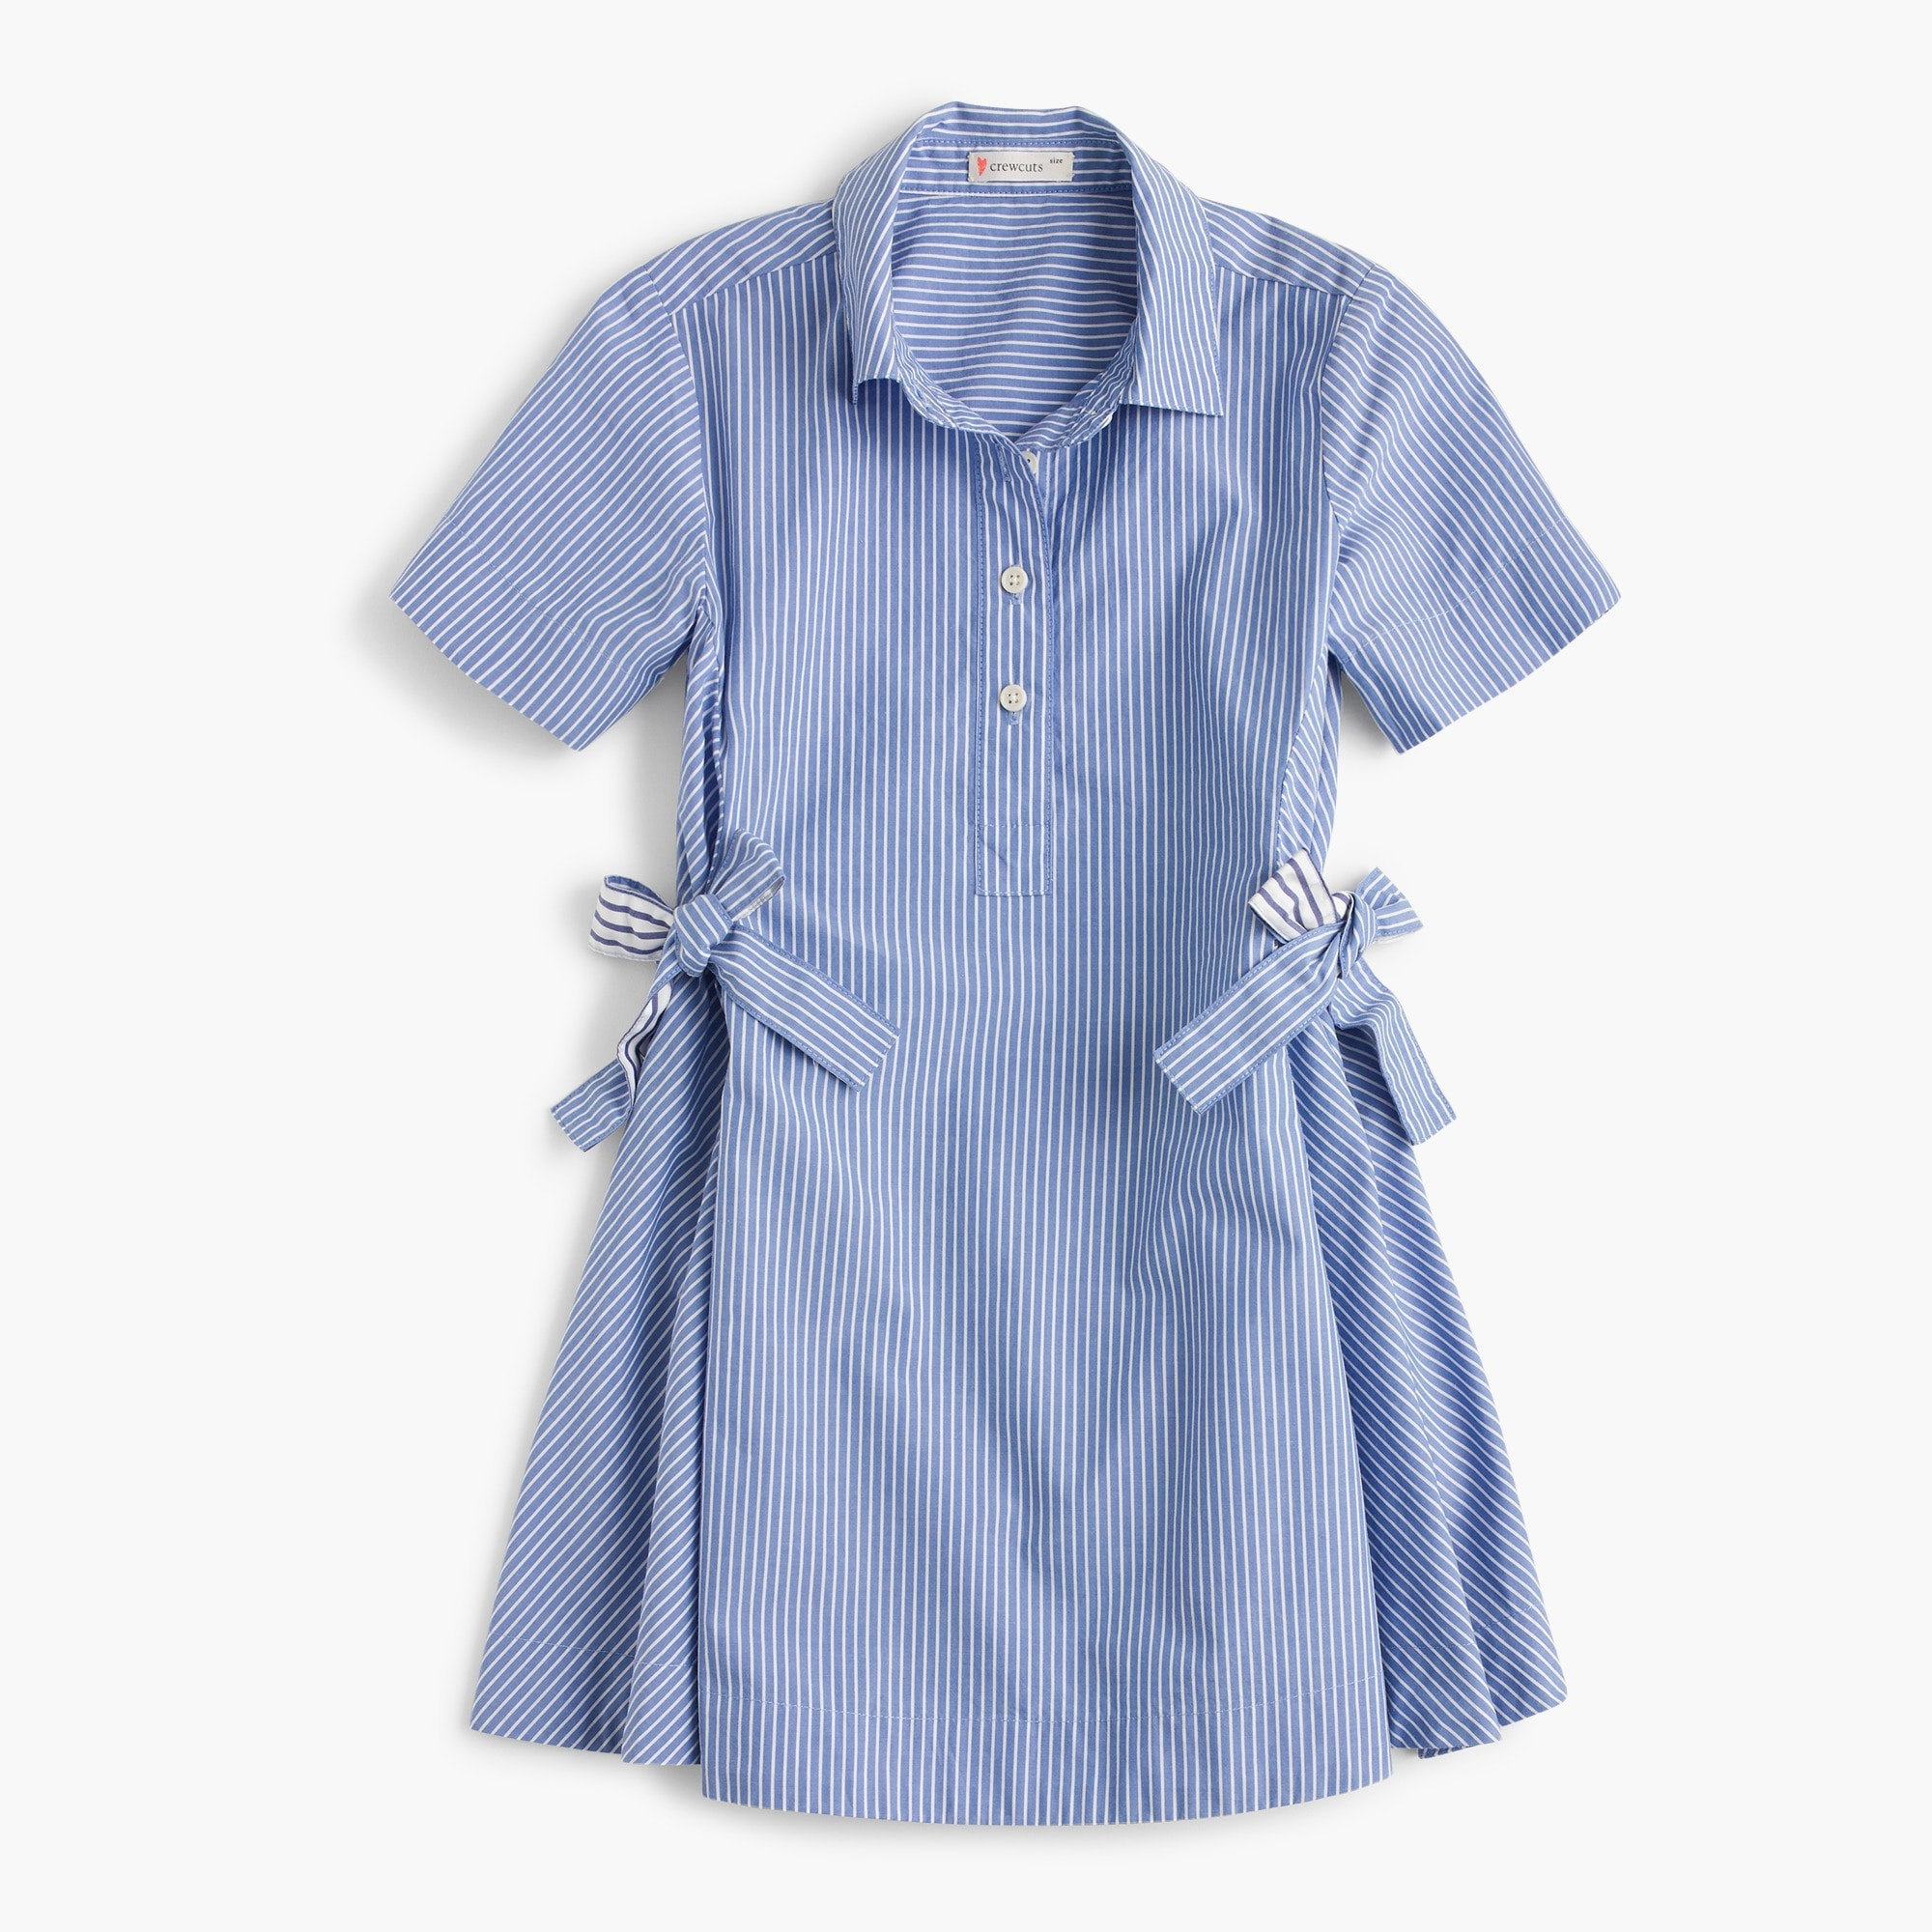 Girls' side tie shirtdress in mixed stripes